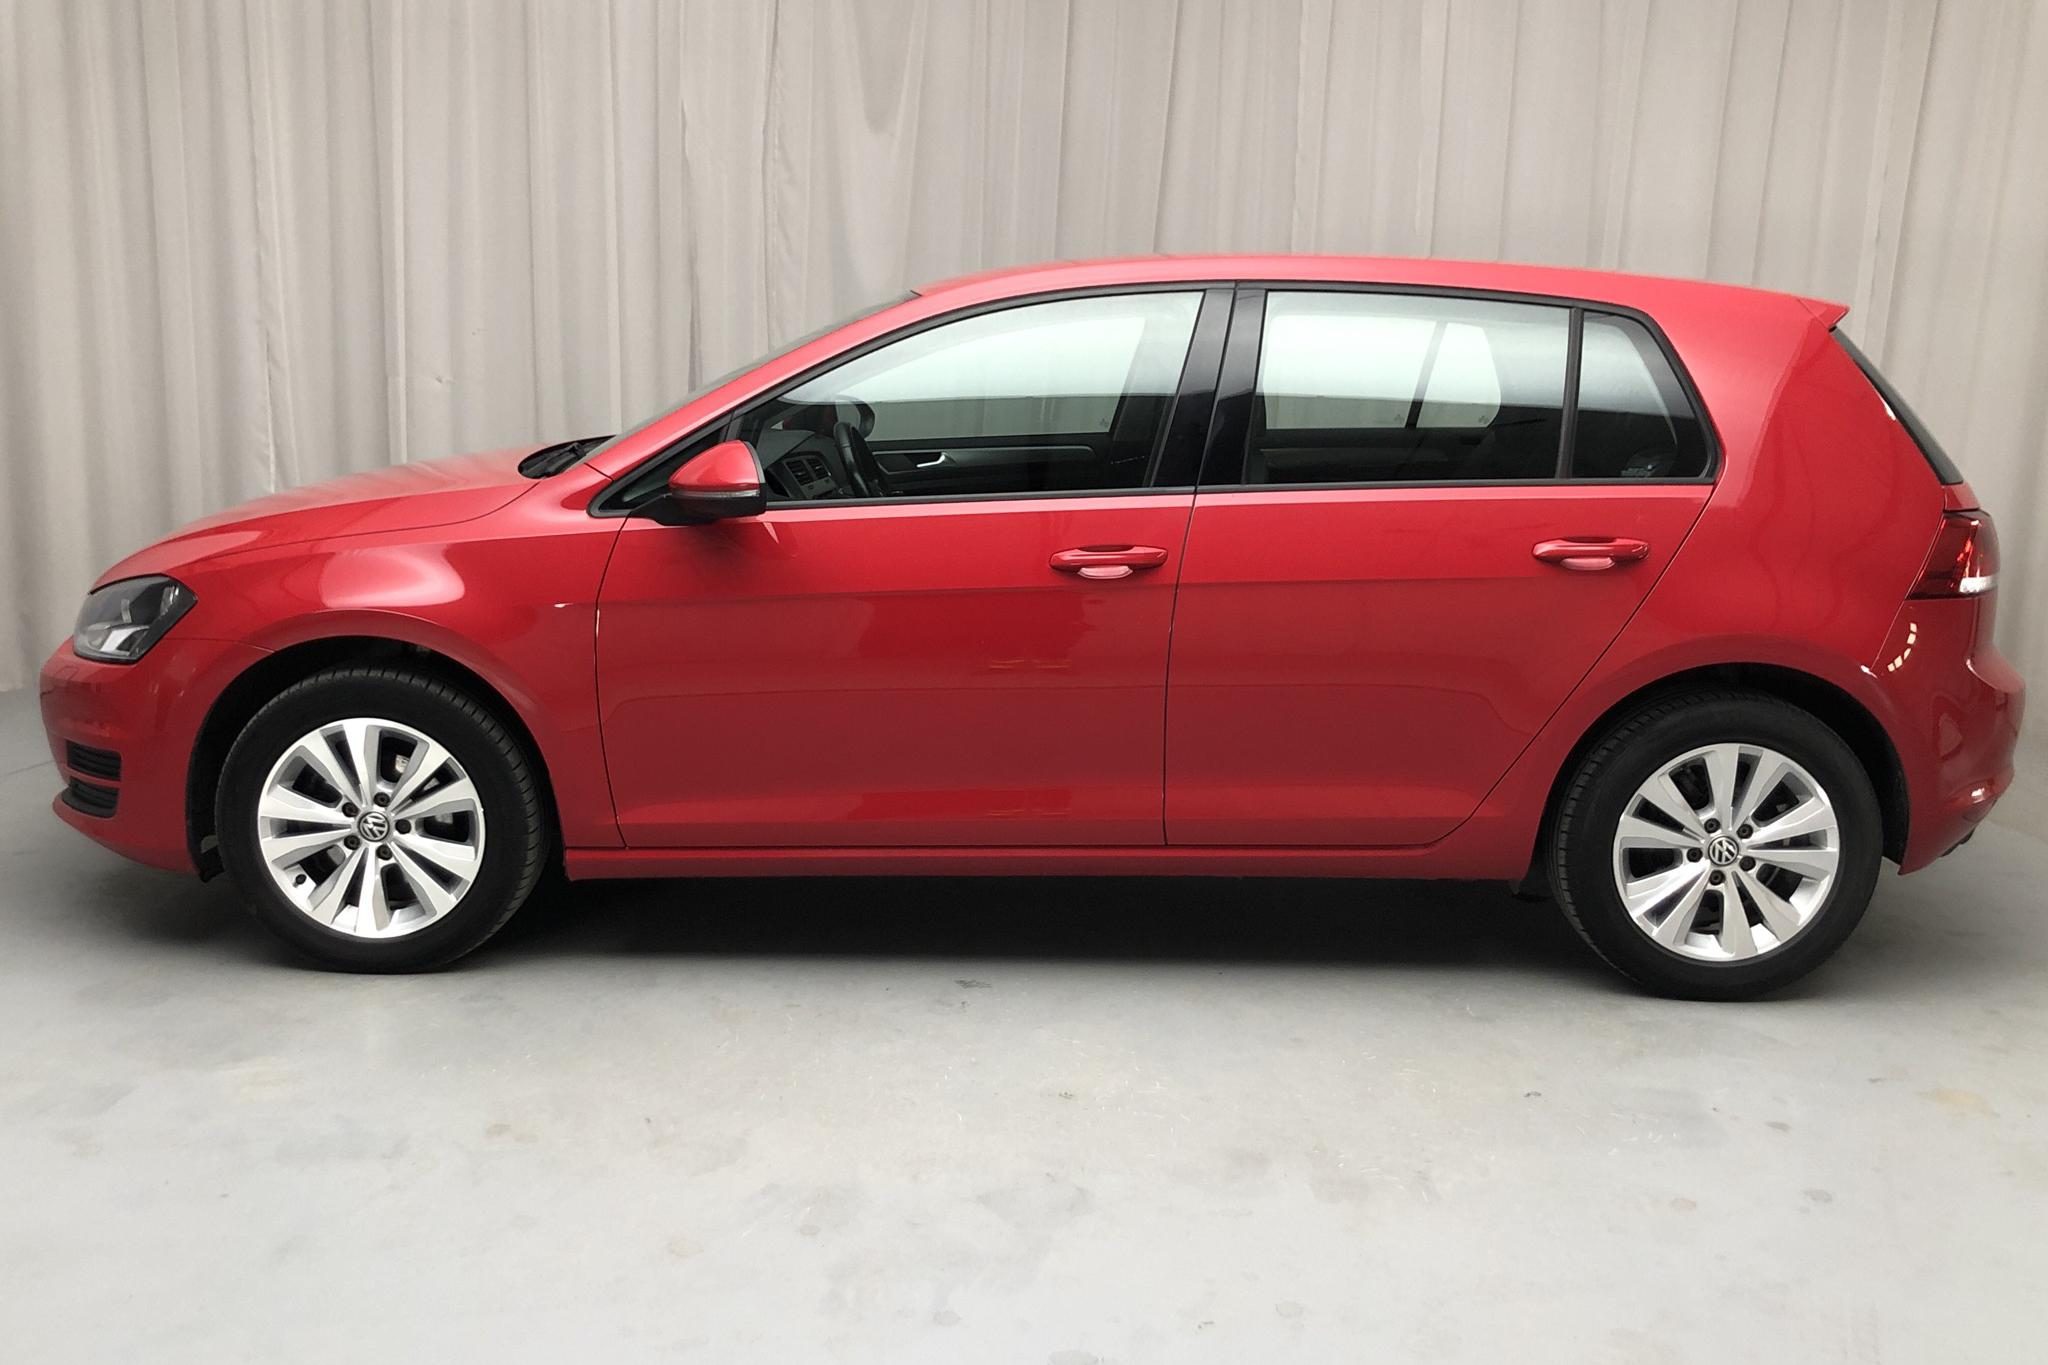 VW Golf VII 1.2 TSI 5dr (105hk) - 104 180 km - Manual - red - 2015